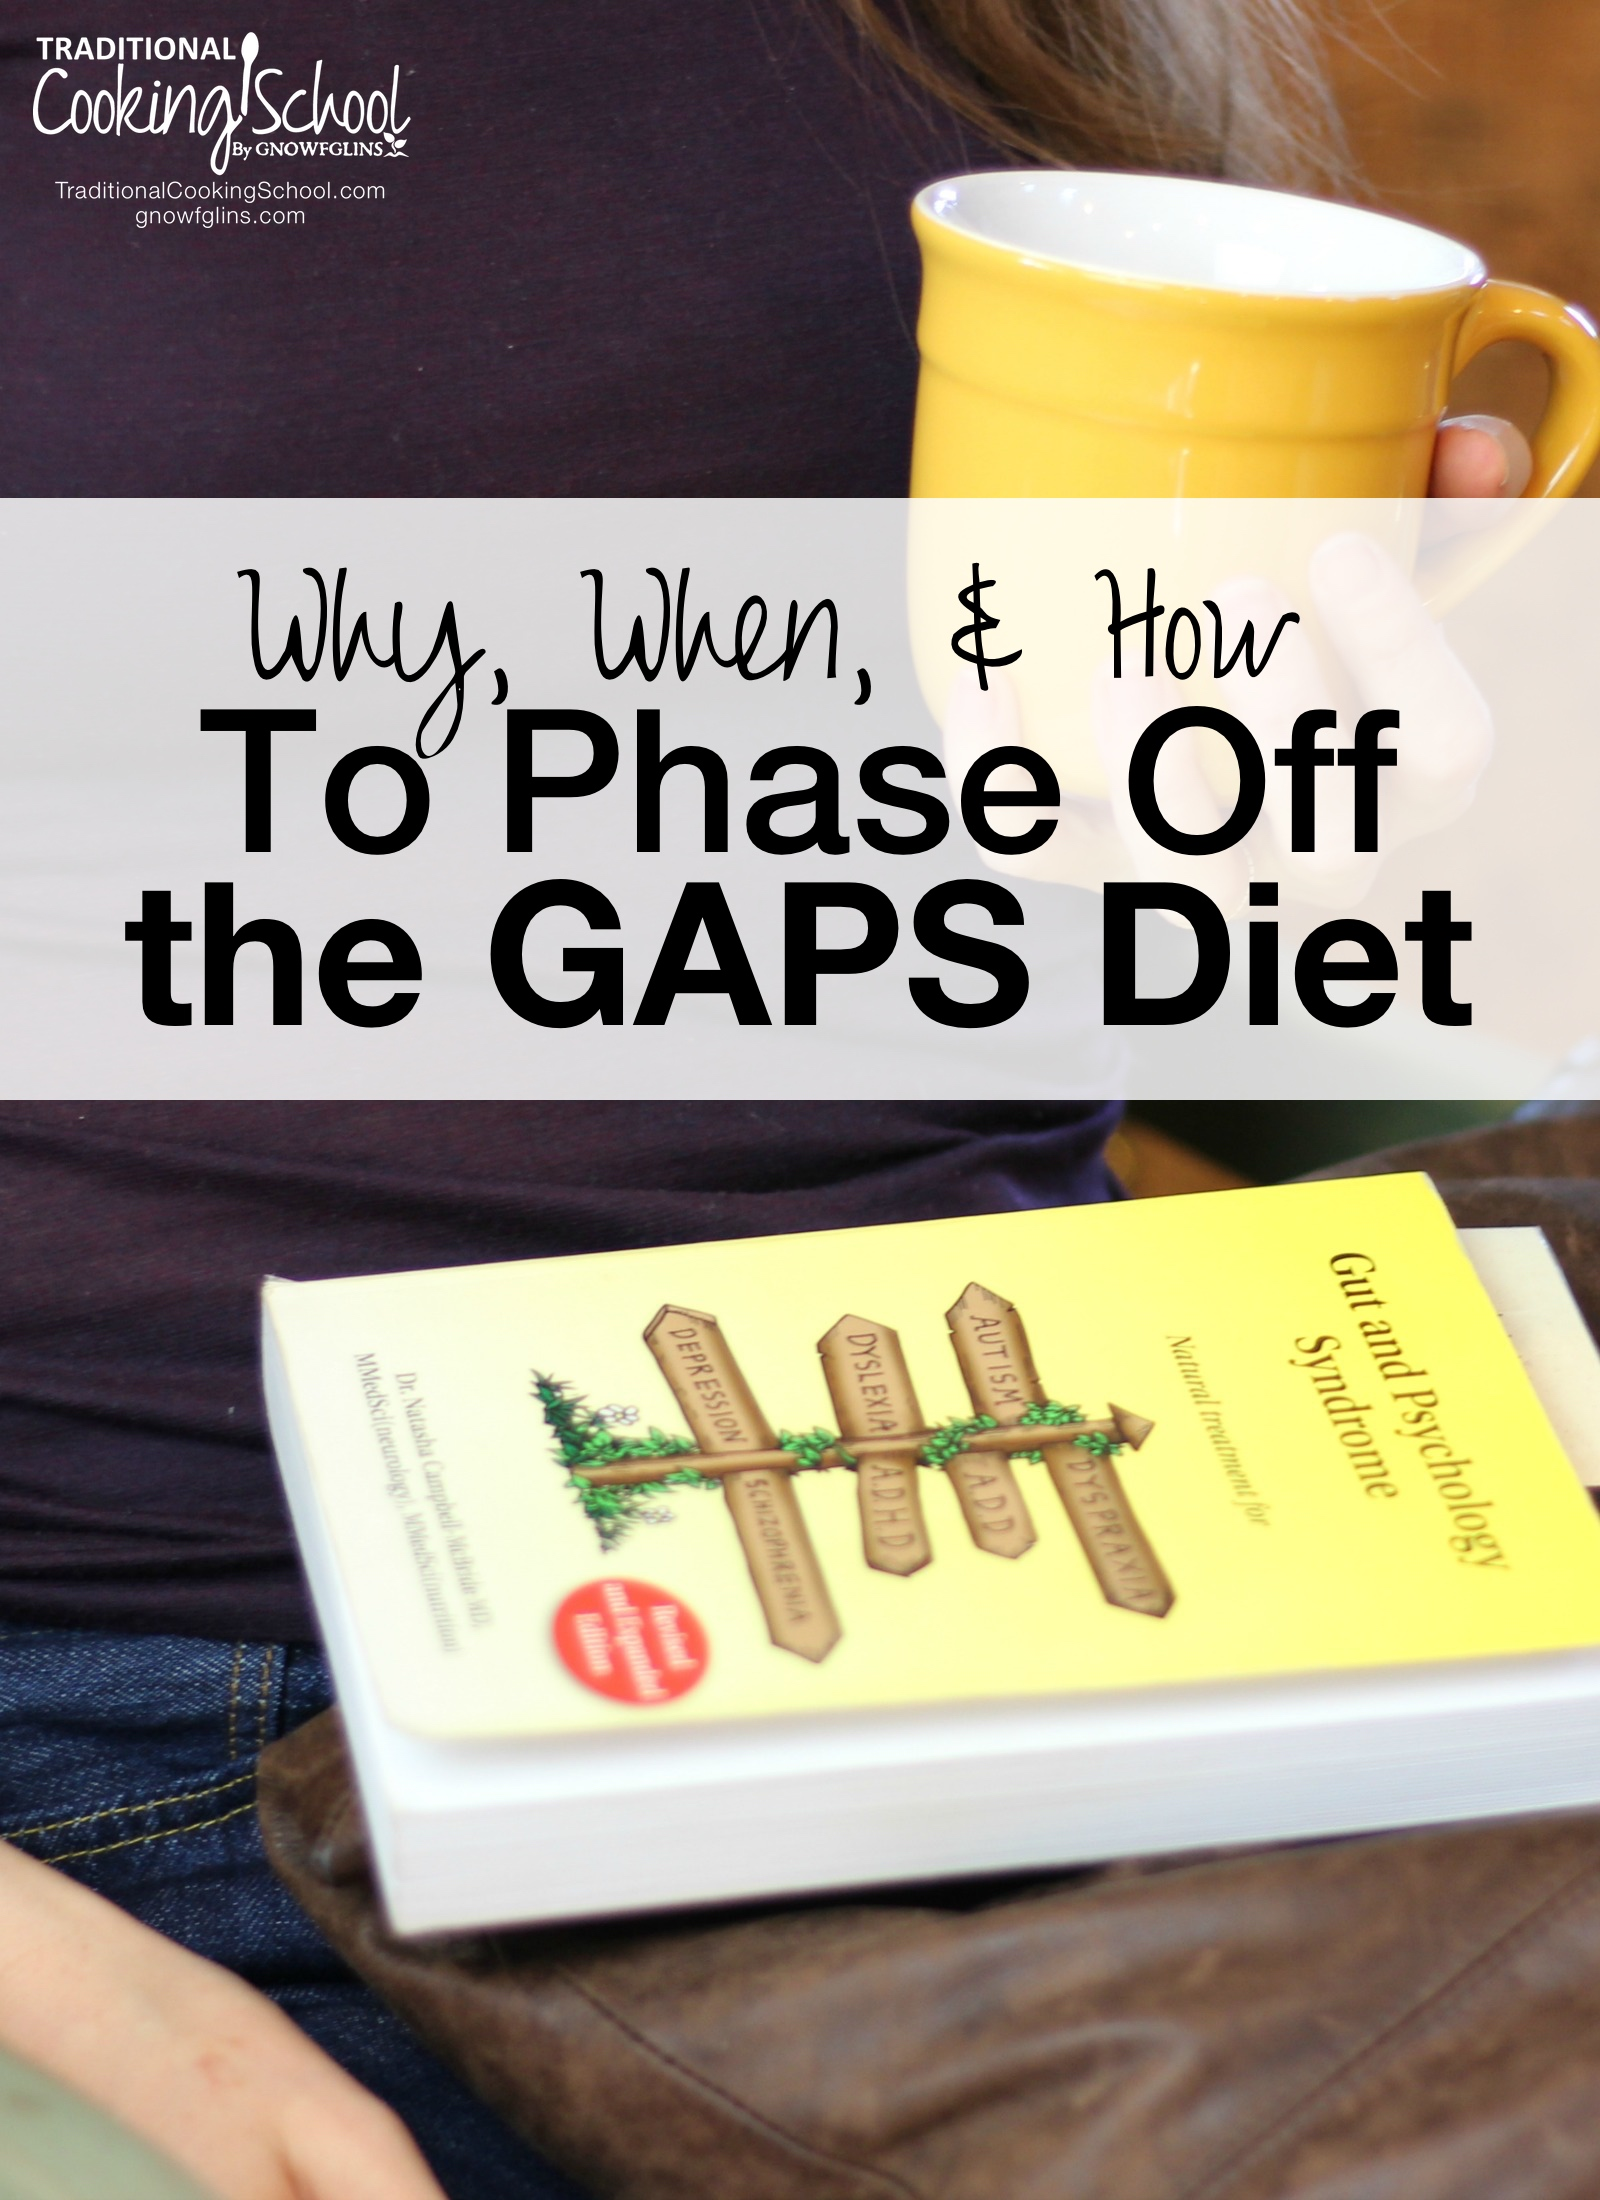 Why, When, & How To Phase Off The GAPS Diet | Are you on the GAPS Diet? Have you thought about starting? How do you know when it's time to stop? My family and I have been on the GAPS Diet for almost 5 years. We're unusual that way. We've been dependent on the GAPS diet for most of my children's childhoods. A year ago, I questioned if I personally would ever be able to get off. Thanks to my own research and various people I met along the way, I don't wonder any more. | TraditionalCookingSchool.com